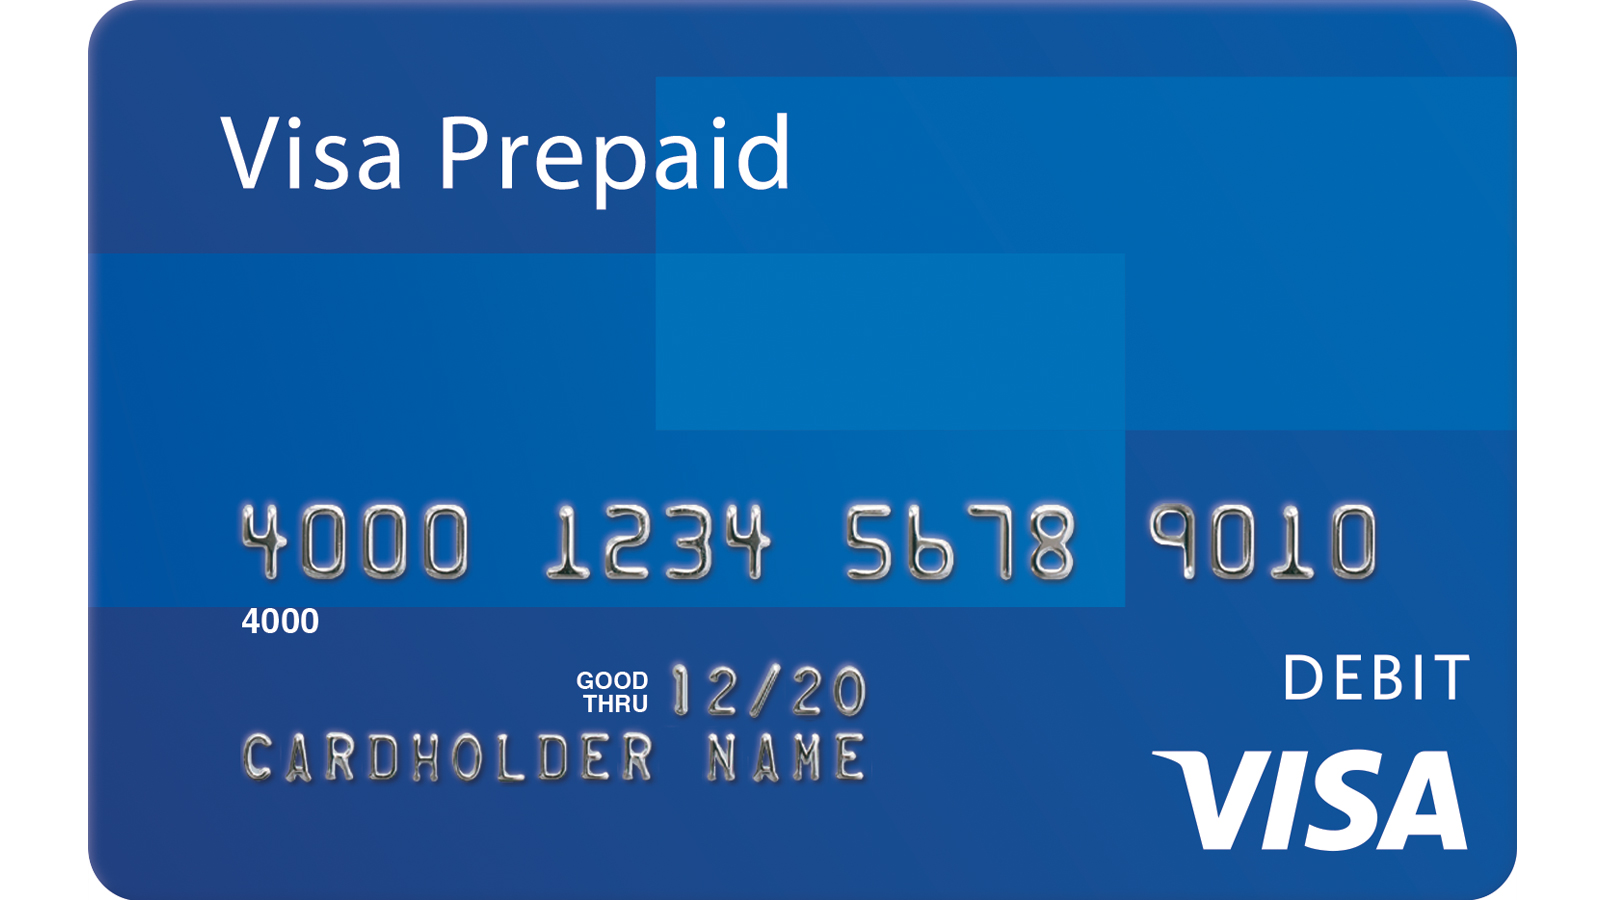 visa prepaid cards with readylink visa - Prepaid Cards Near Me